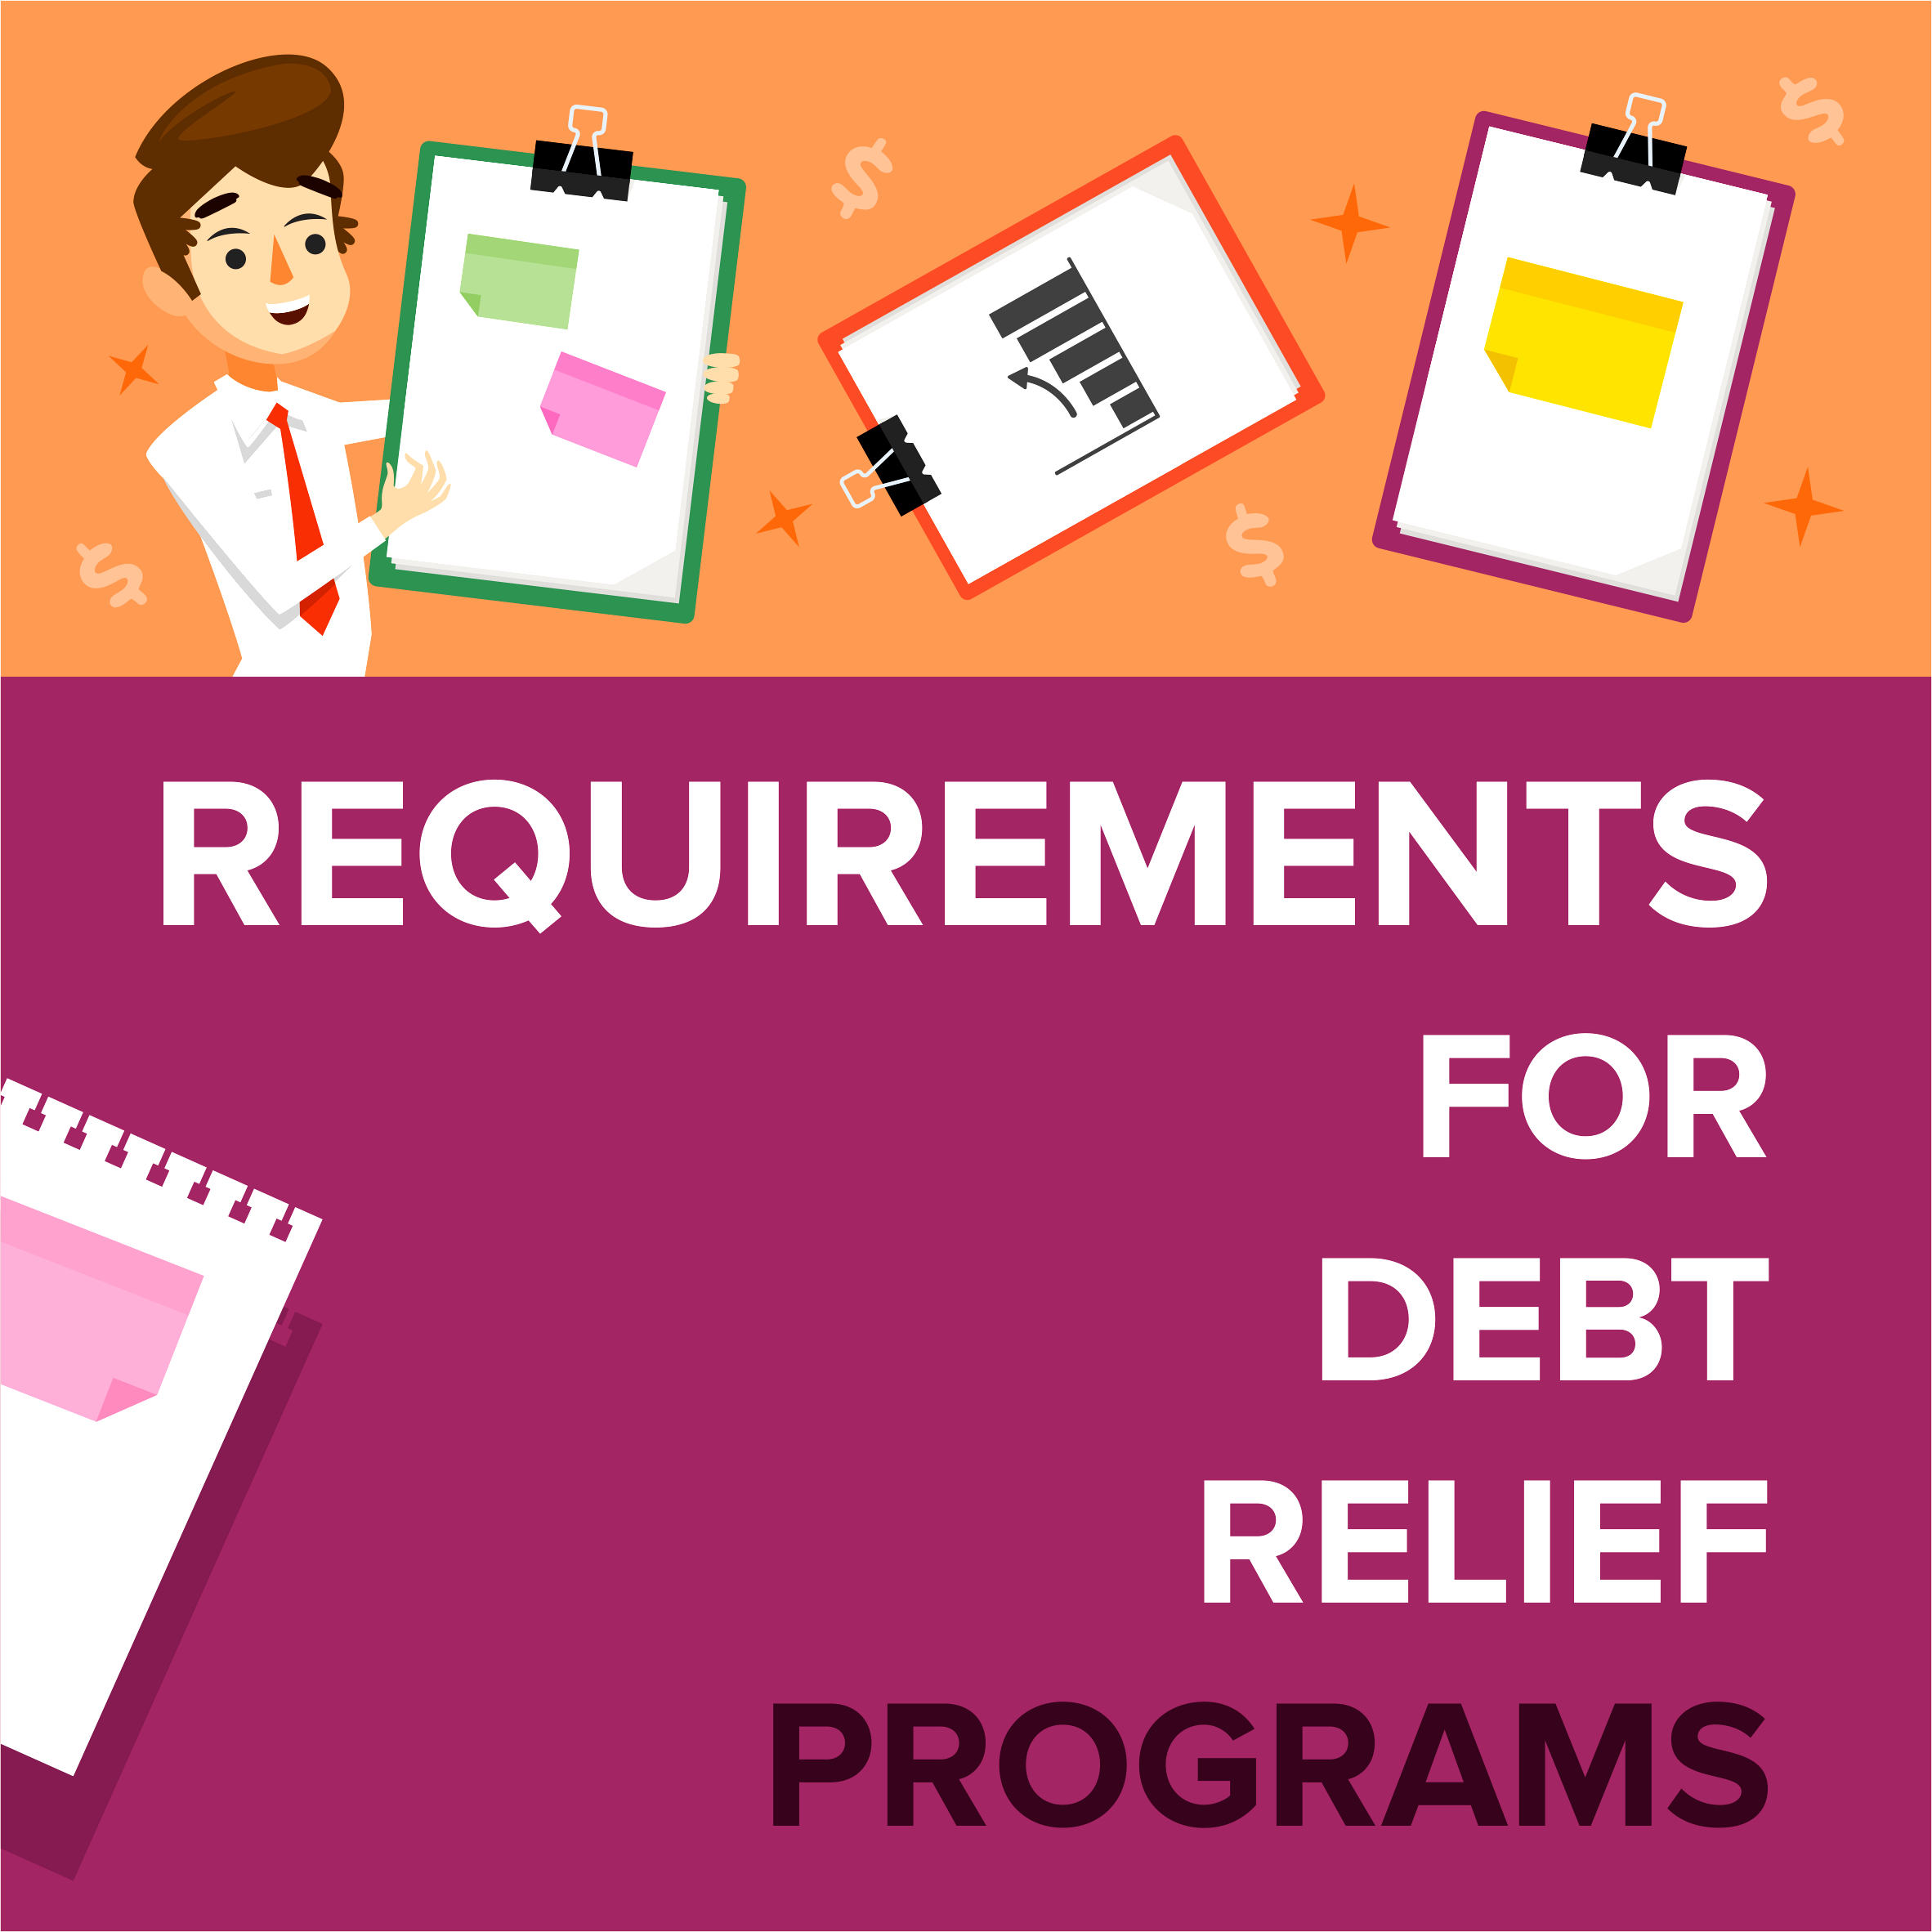 Requirements For Debt Relief Programs